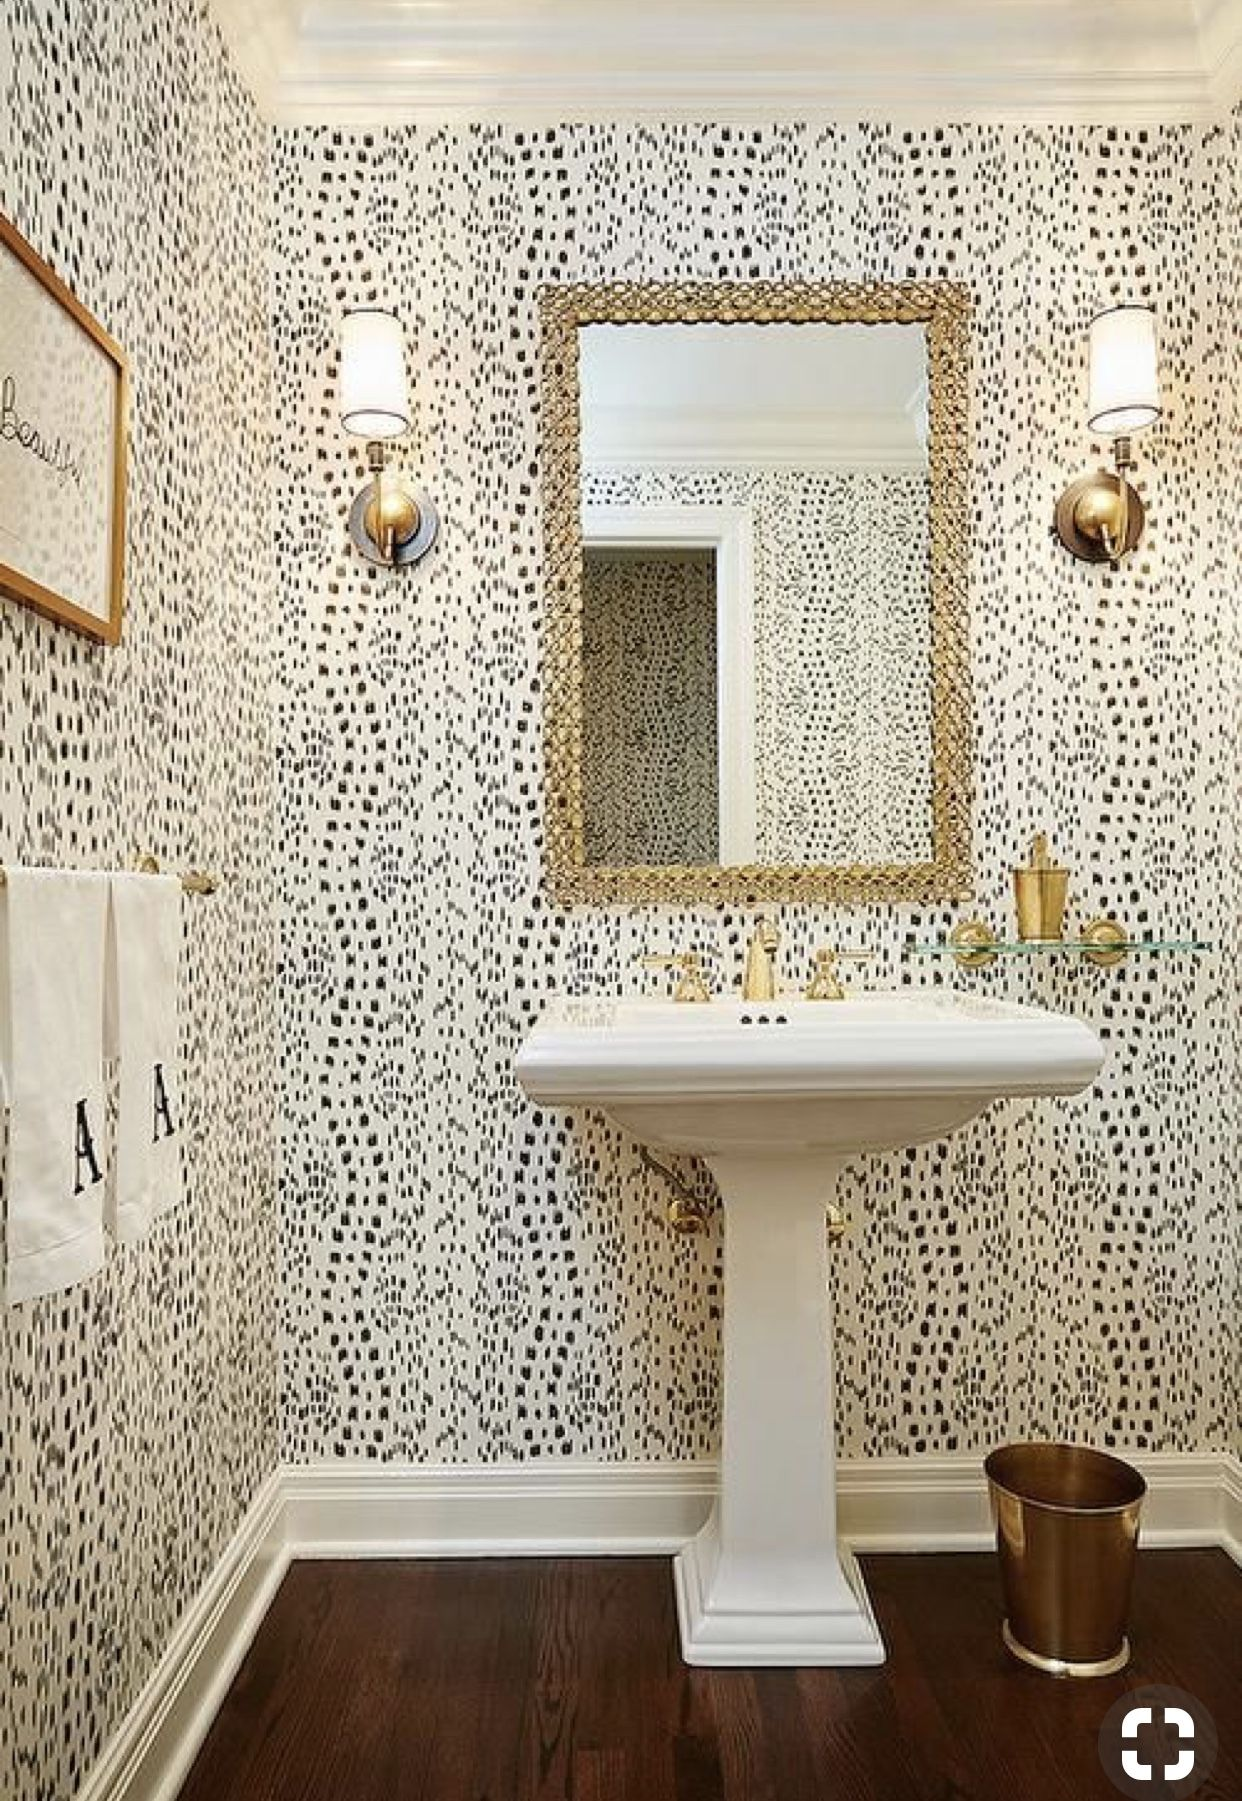 Pin by Erika Howell on Powder Rooms Small bathroom